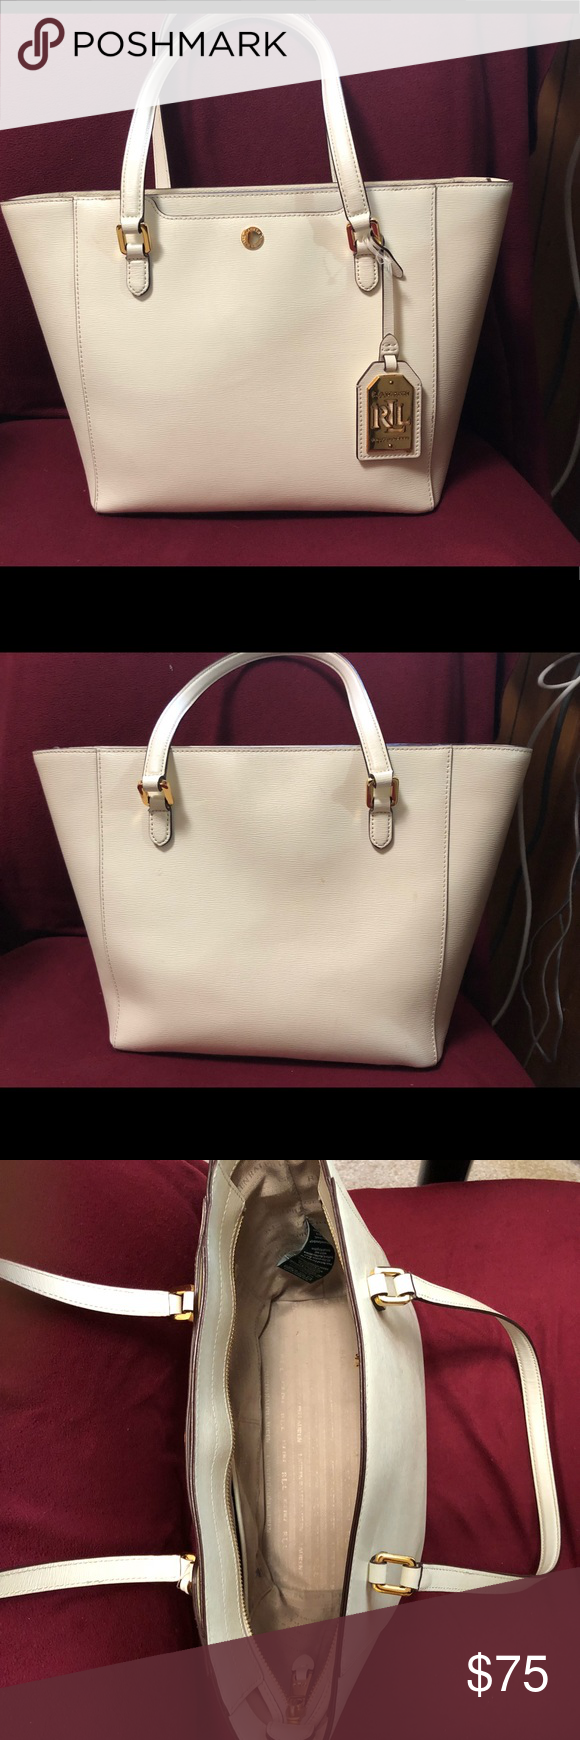 b8c0fab2de5 Lauren Ralph Lauren white leather tote bag. White leather next to new.  Perfect condition